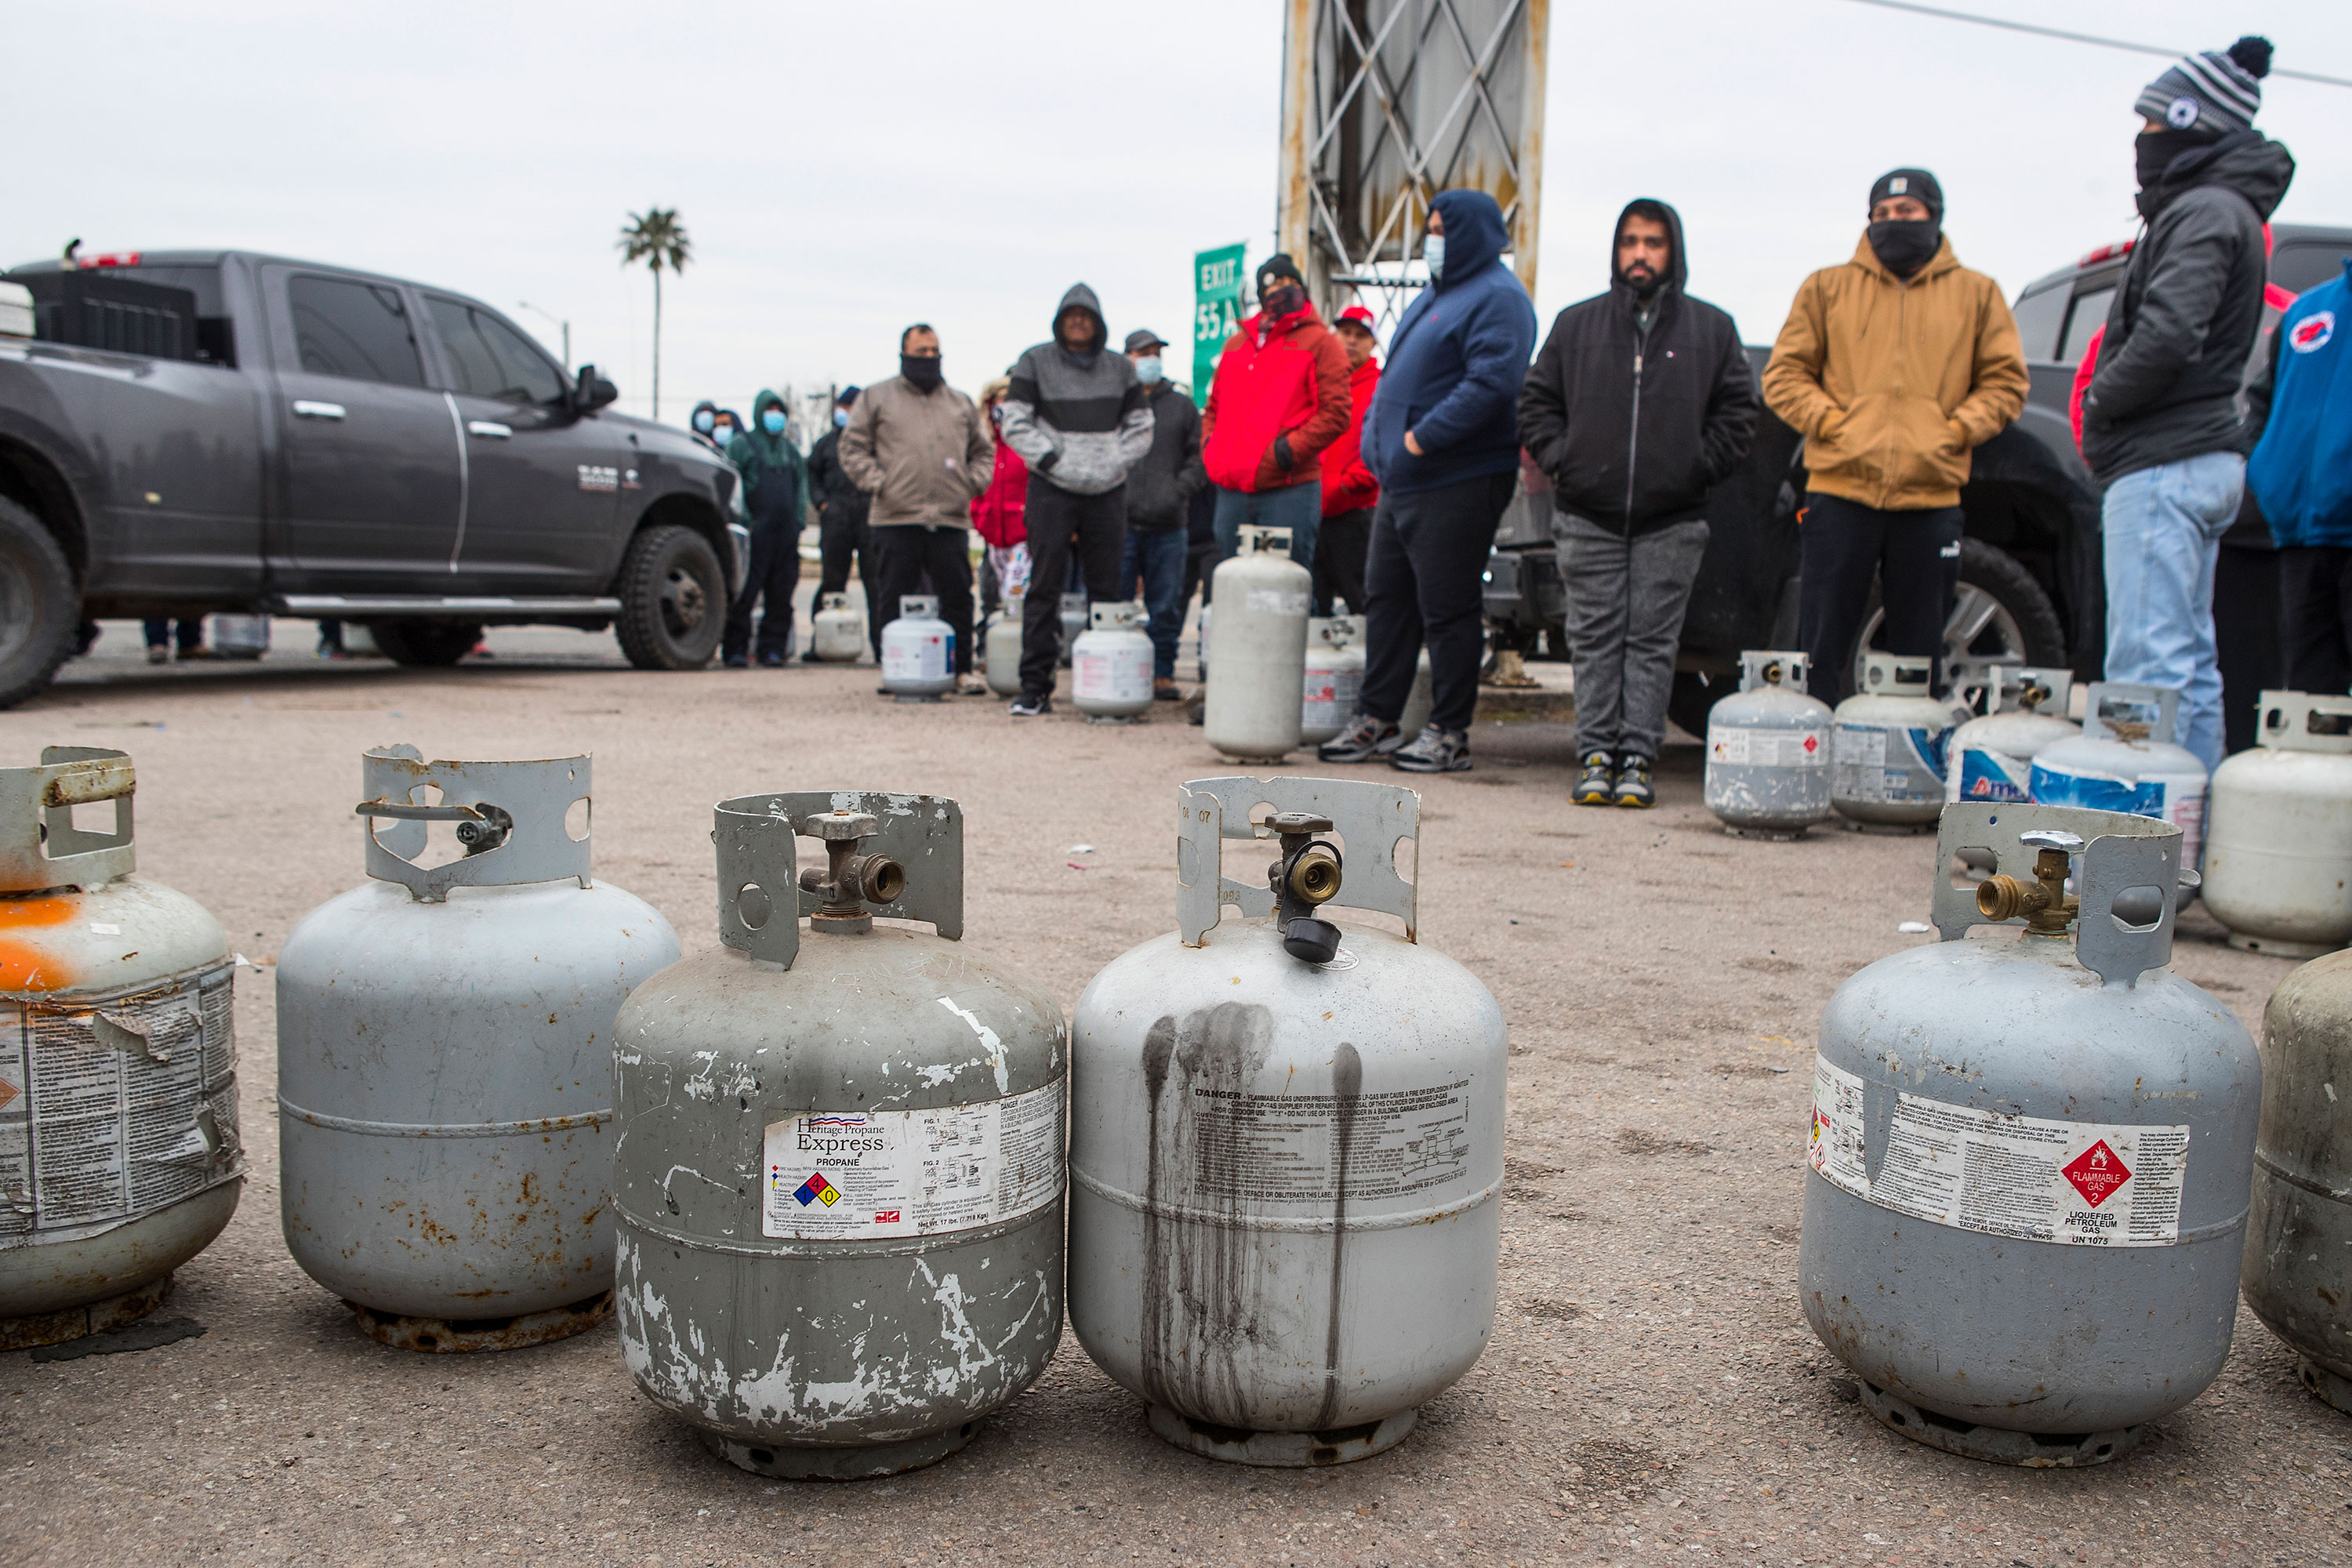 People line up to fill their empty propane tanks in Houston on February 16.